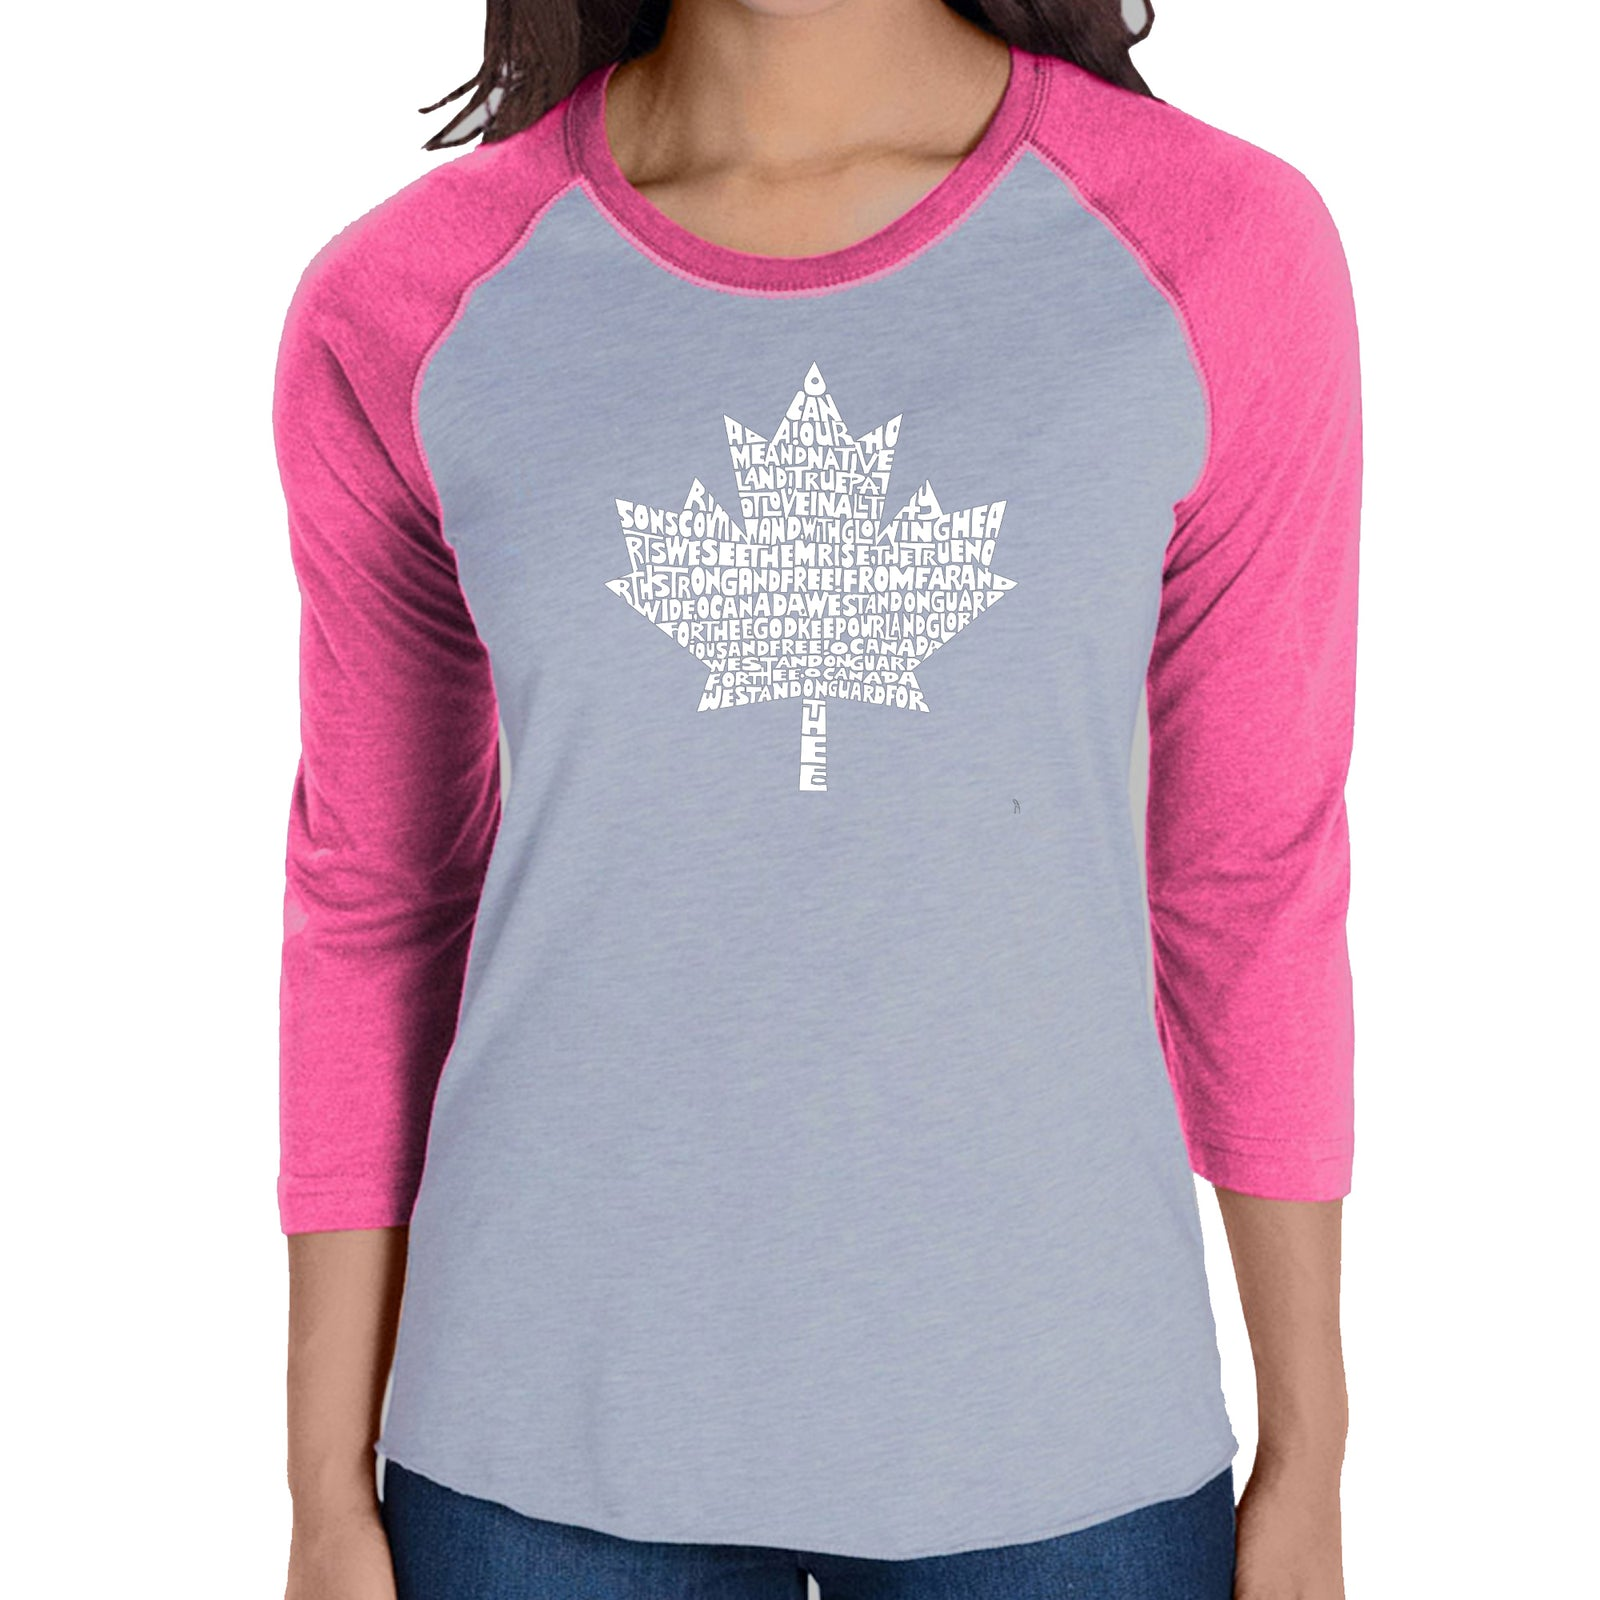 Women's Raglan Baseball Word Art T-shirt - CANADIAN NATIONAL ANTHEM